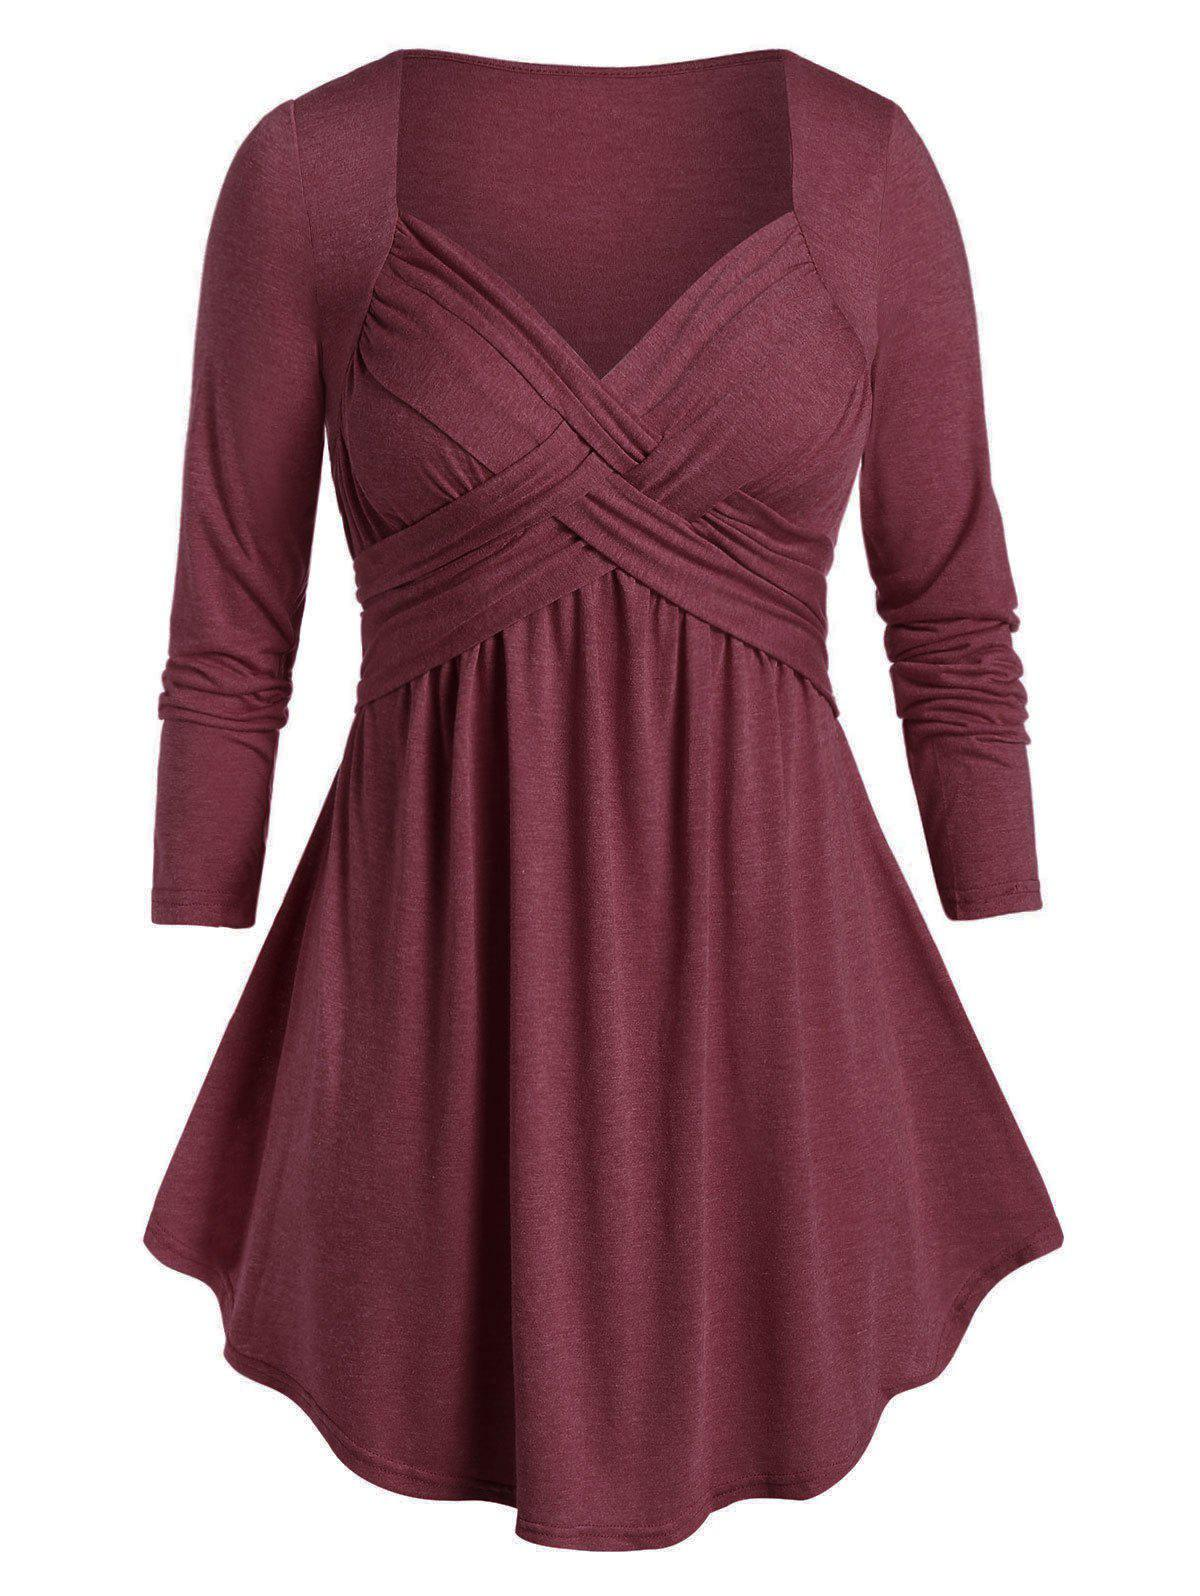 Plus Size Space Dye Tunic Flare T Shirt - RED WINE L